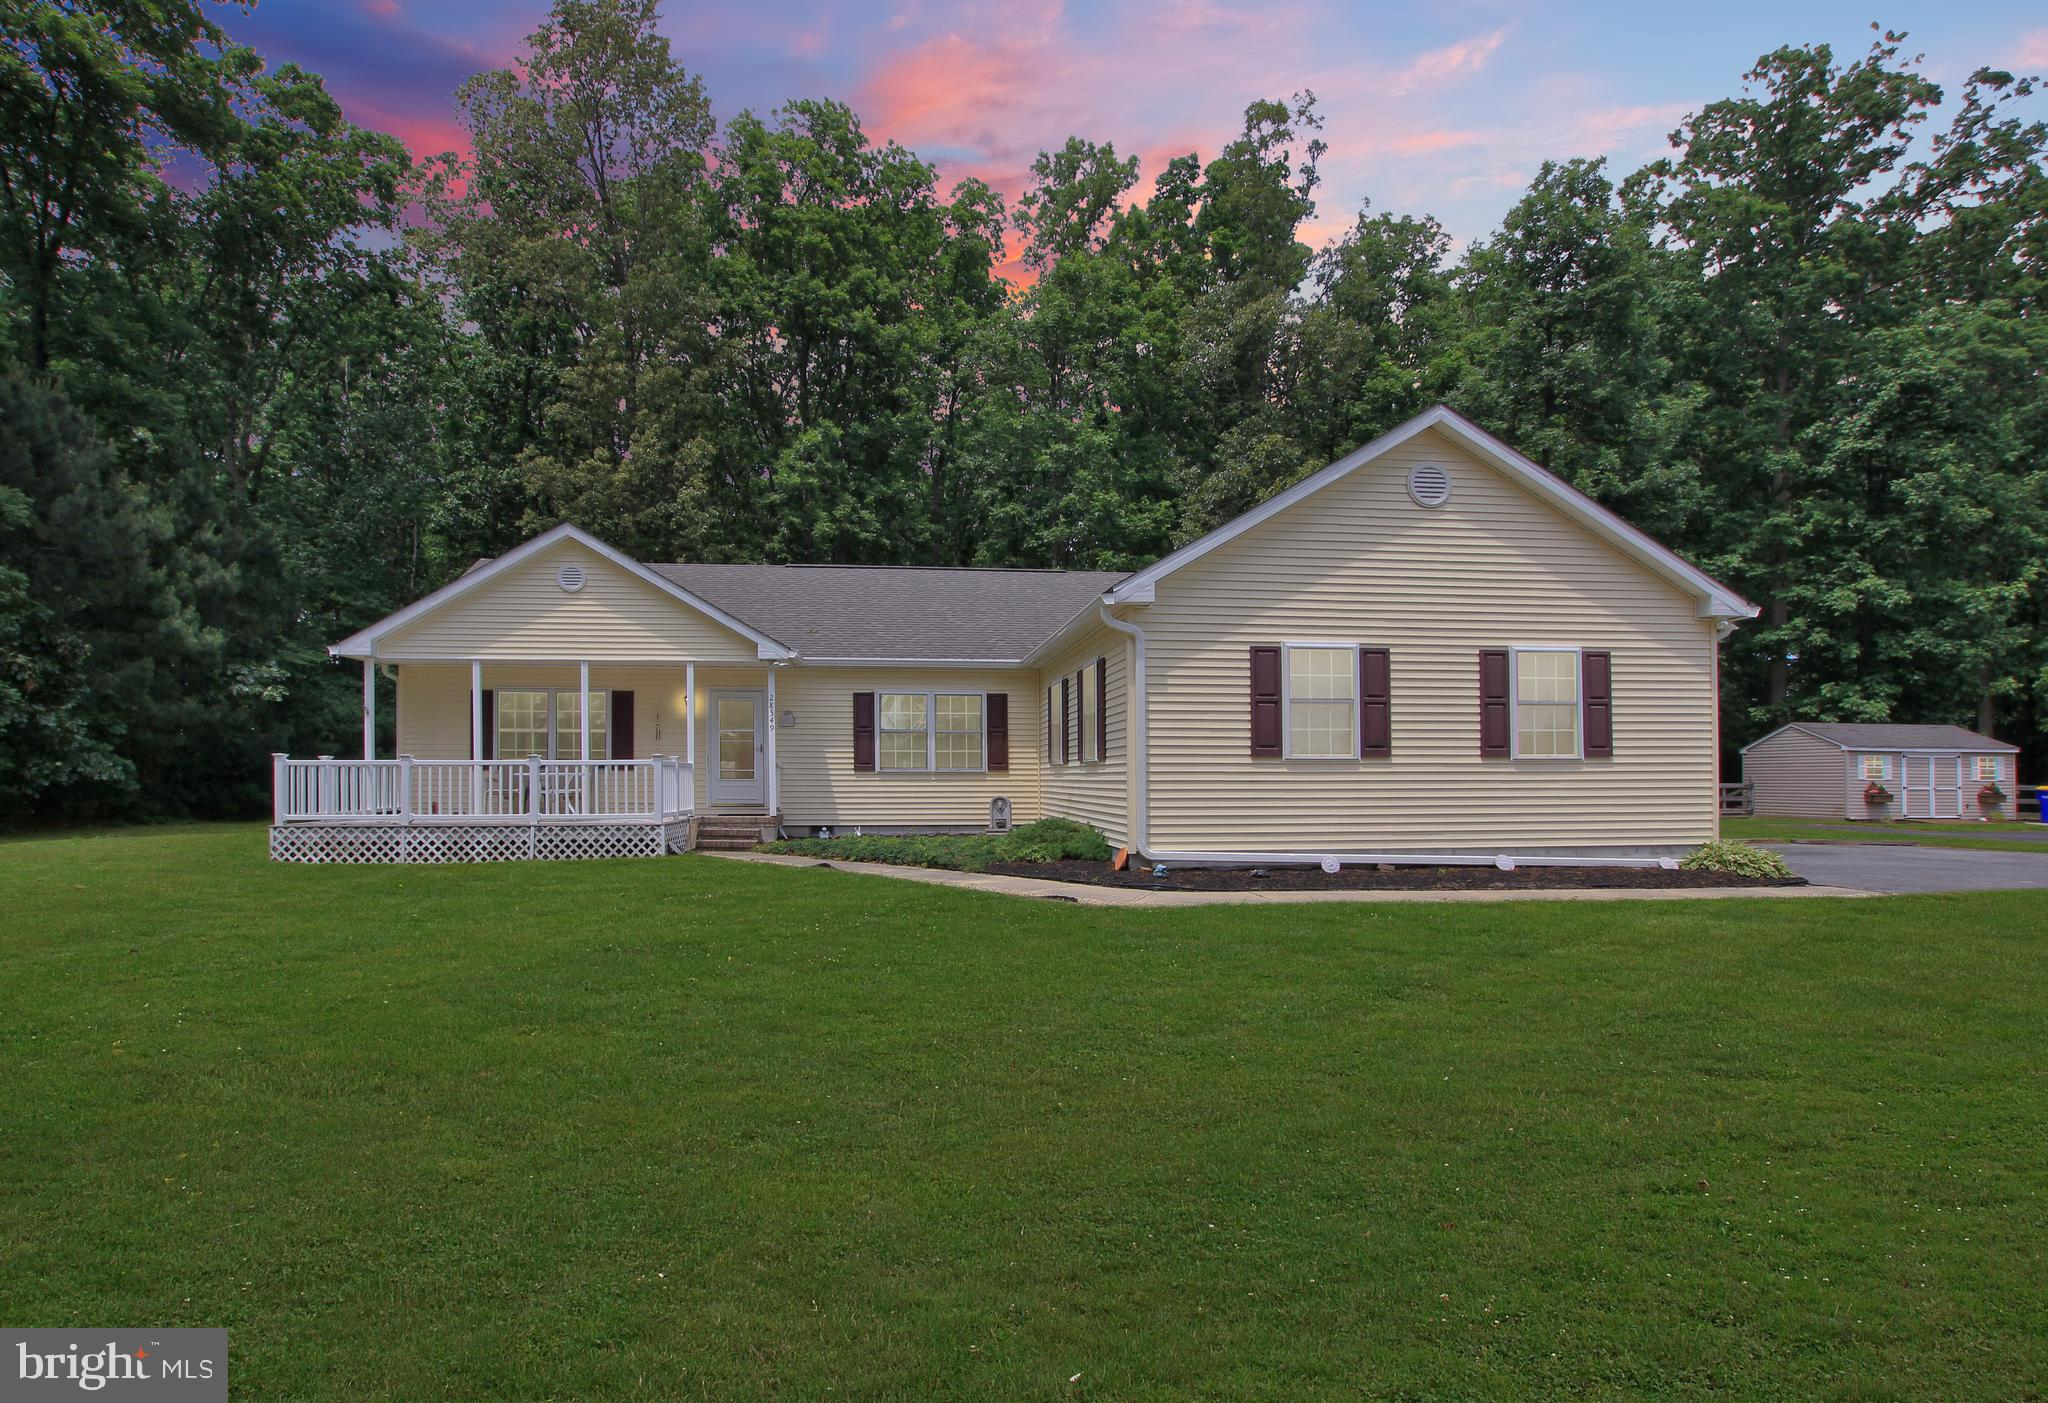 Rancher style home located on a beautiful 3/4 acre wooded lot in sought out Milton area. The home fe